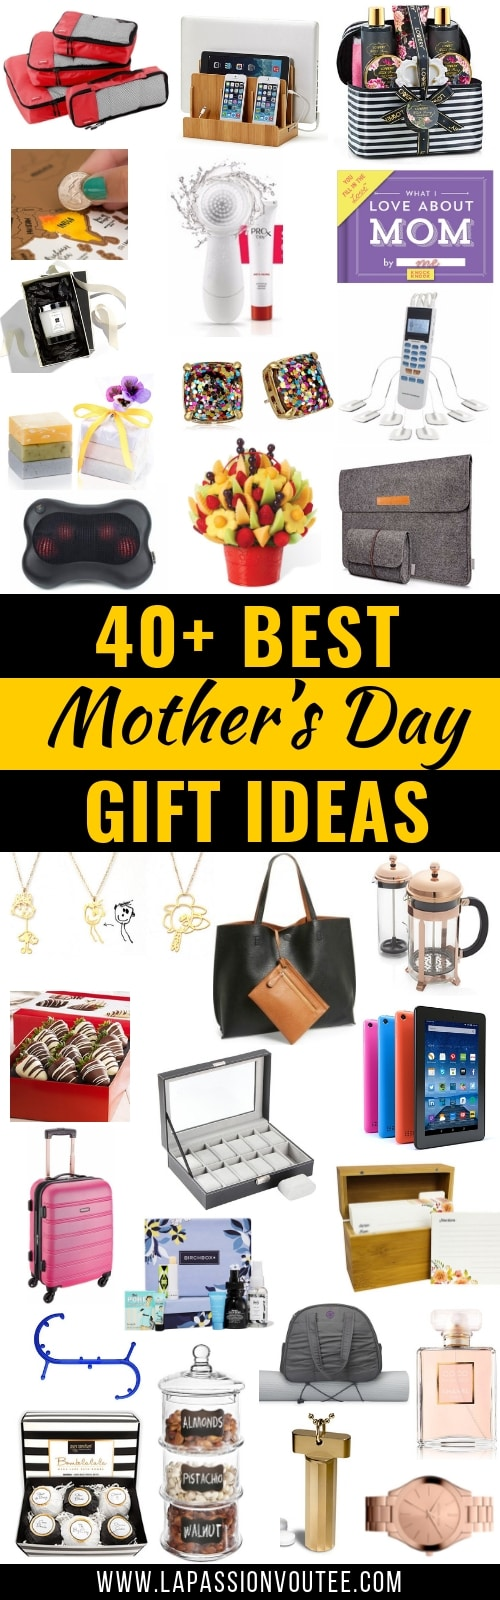 An epic roundup of the best Mother's Day gifts ideas from kids that you don't have to make. These gifts ideas for women are thoughtful and unique. They are great presents from adults that mom's would love. All about gifts for her, gift ideas for her, motherhood. #mothersday #giftideas #giftguide #giftforher #giftformom